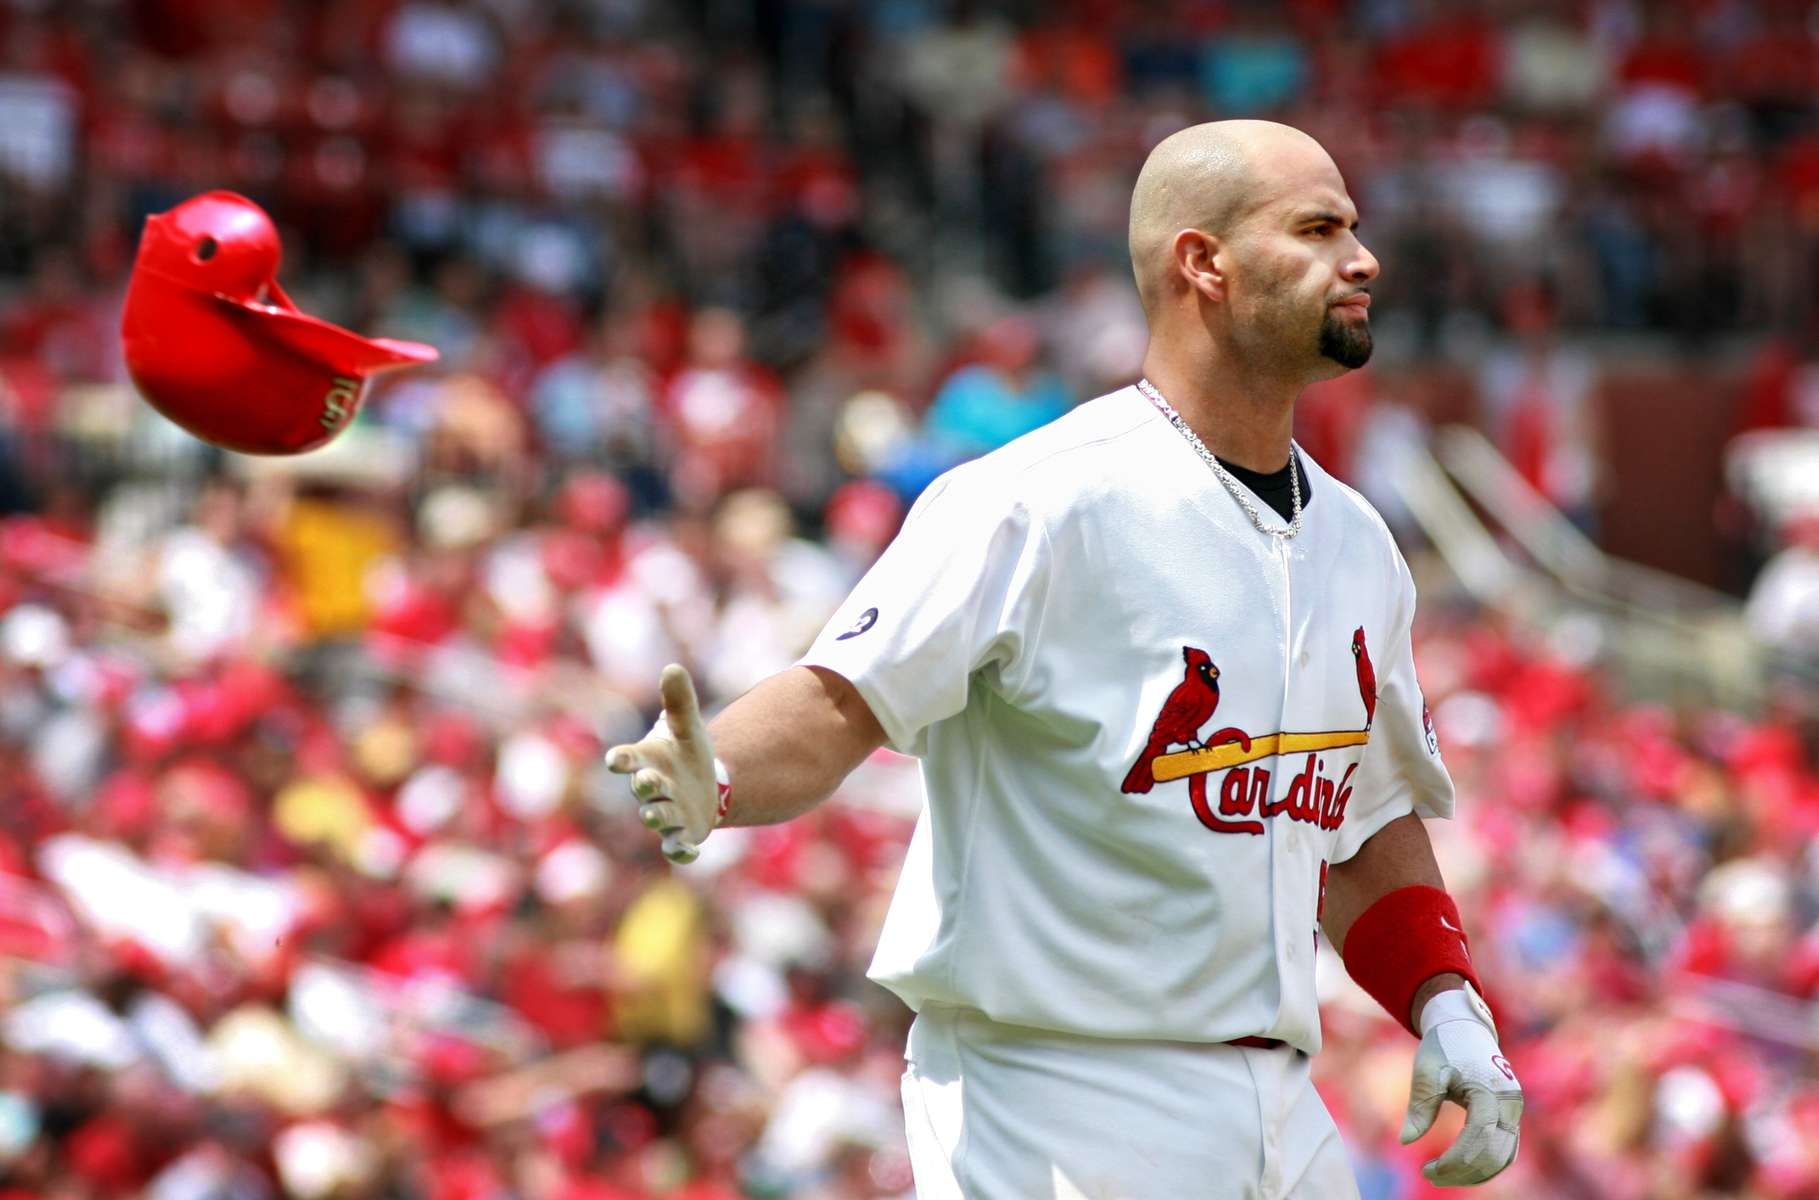 Saturday May 5, 2007--Albert Pujols flips is helmet to the bench after lining out to end the sixth inning of Saturday's game agains the Astros at Busch Stadium.  Pujols went 0-4 on the day striking out once and ending his 12 game hitting streak.  The Cardinals offense was lacking all day as they were shutout 13-0 and managed only four hits on the day.David Carson | Post-Dispatch